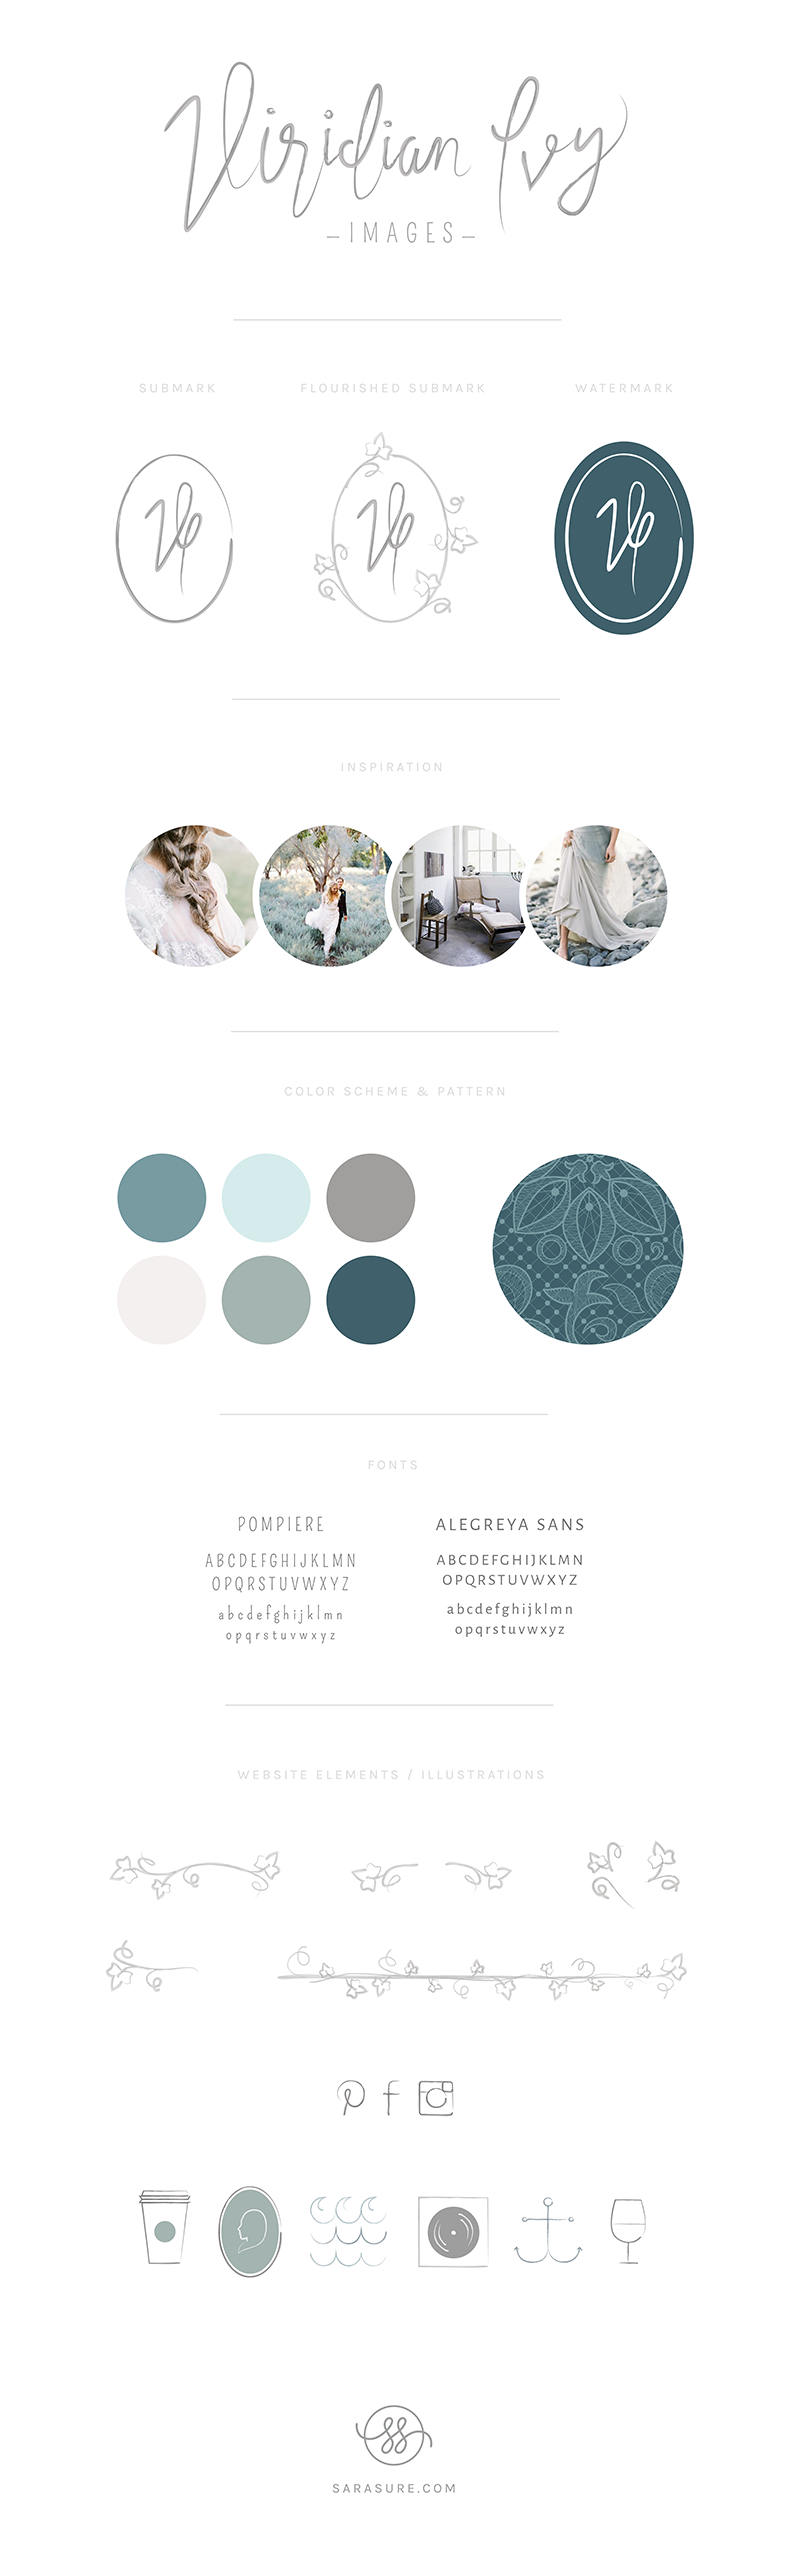 Viridian Ivy Brand Style Guide